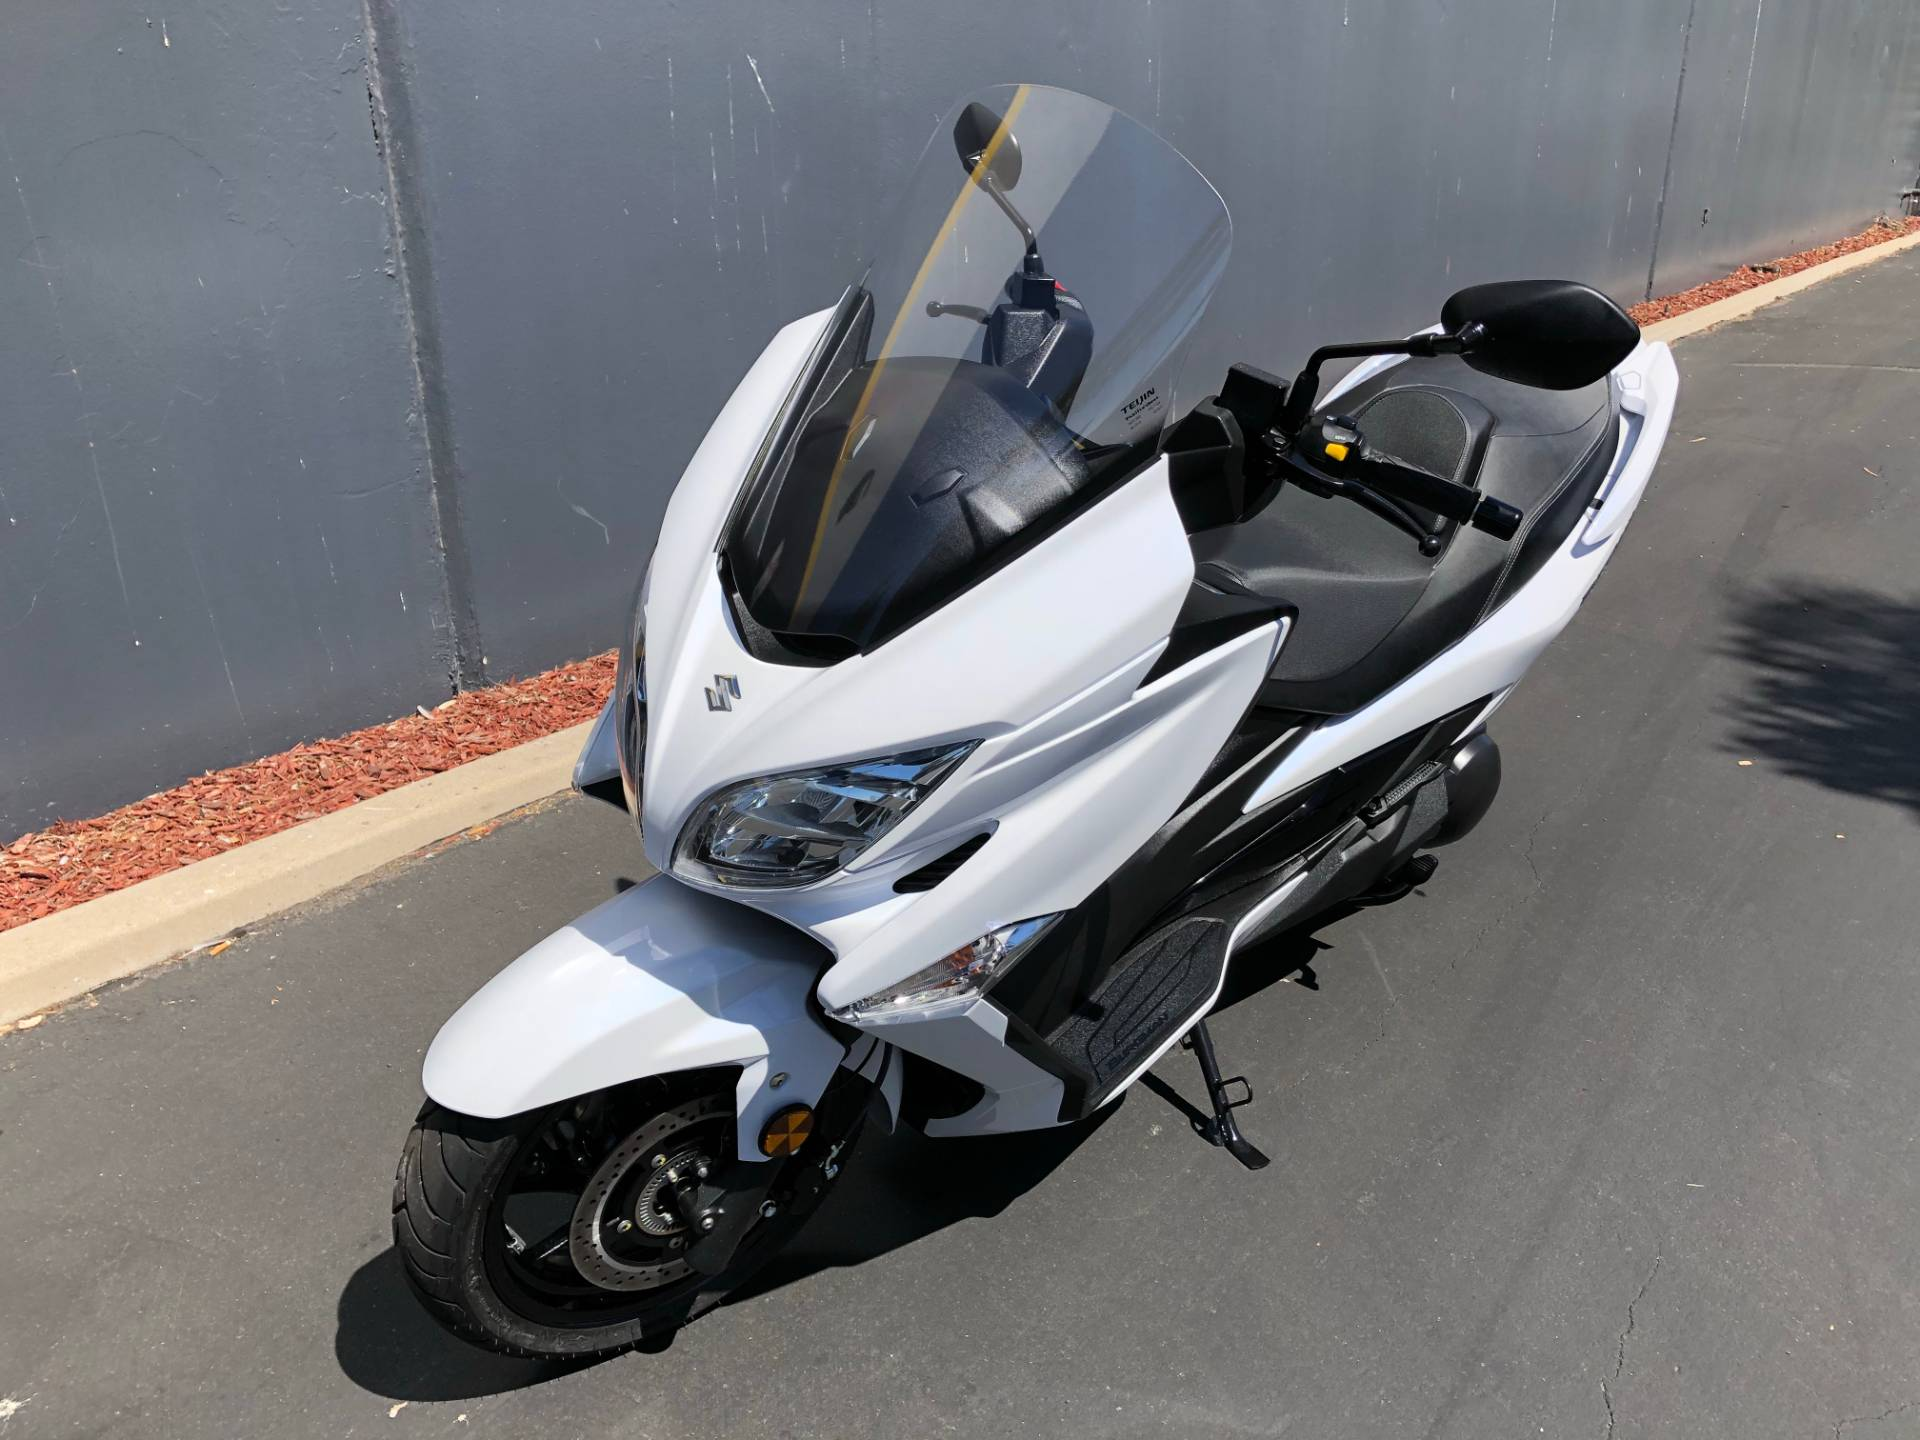 2018 Suzuki Burgman 400 ABS in Chula Vista, California - Photo 9